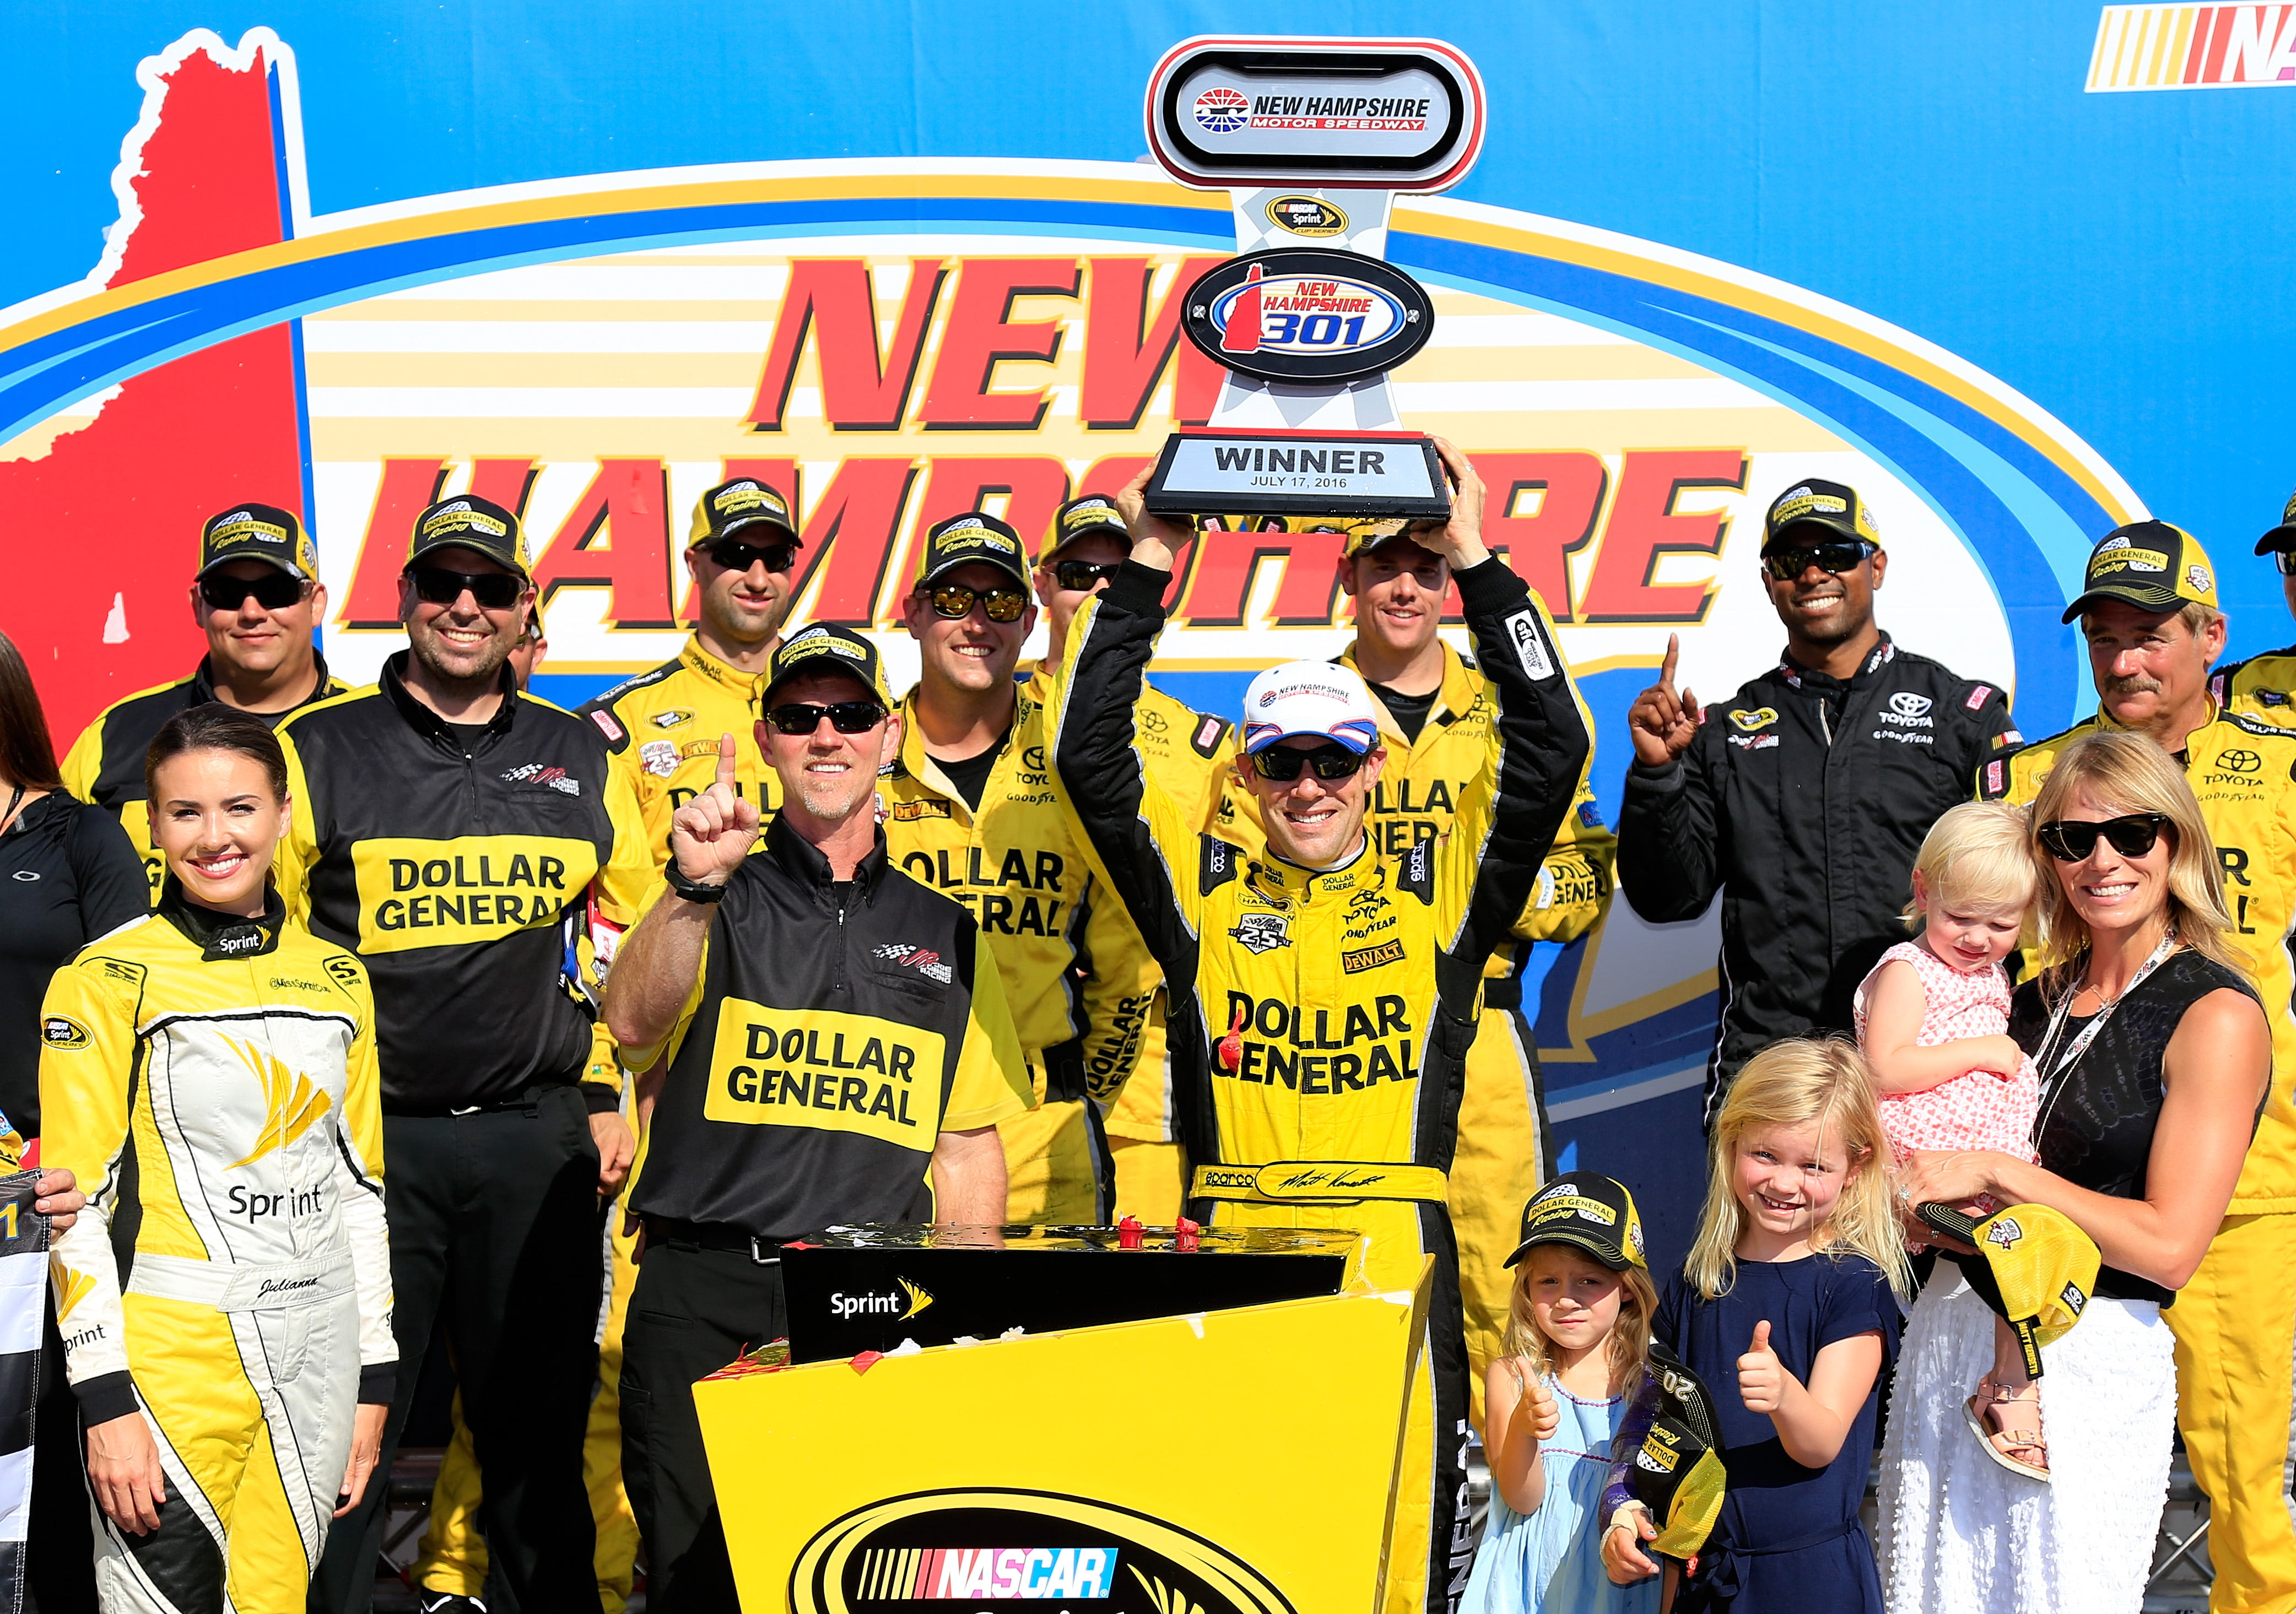 Kenseth battles to front for win at New Hampshire